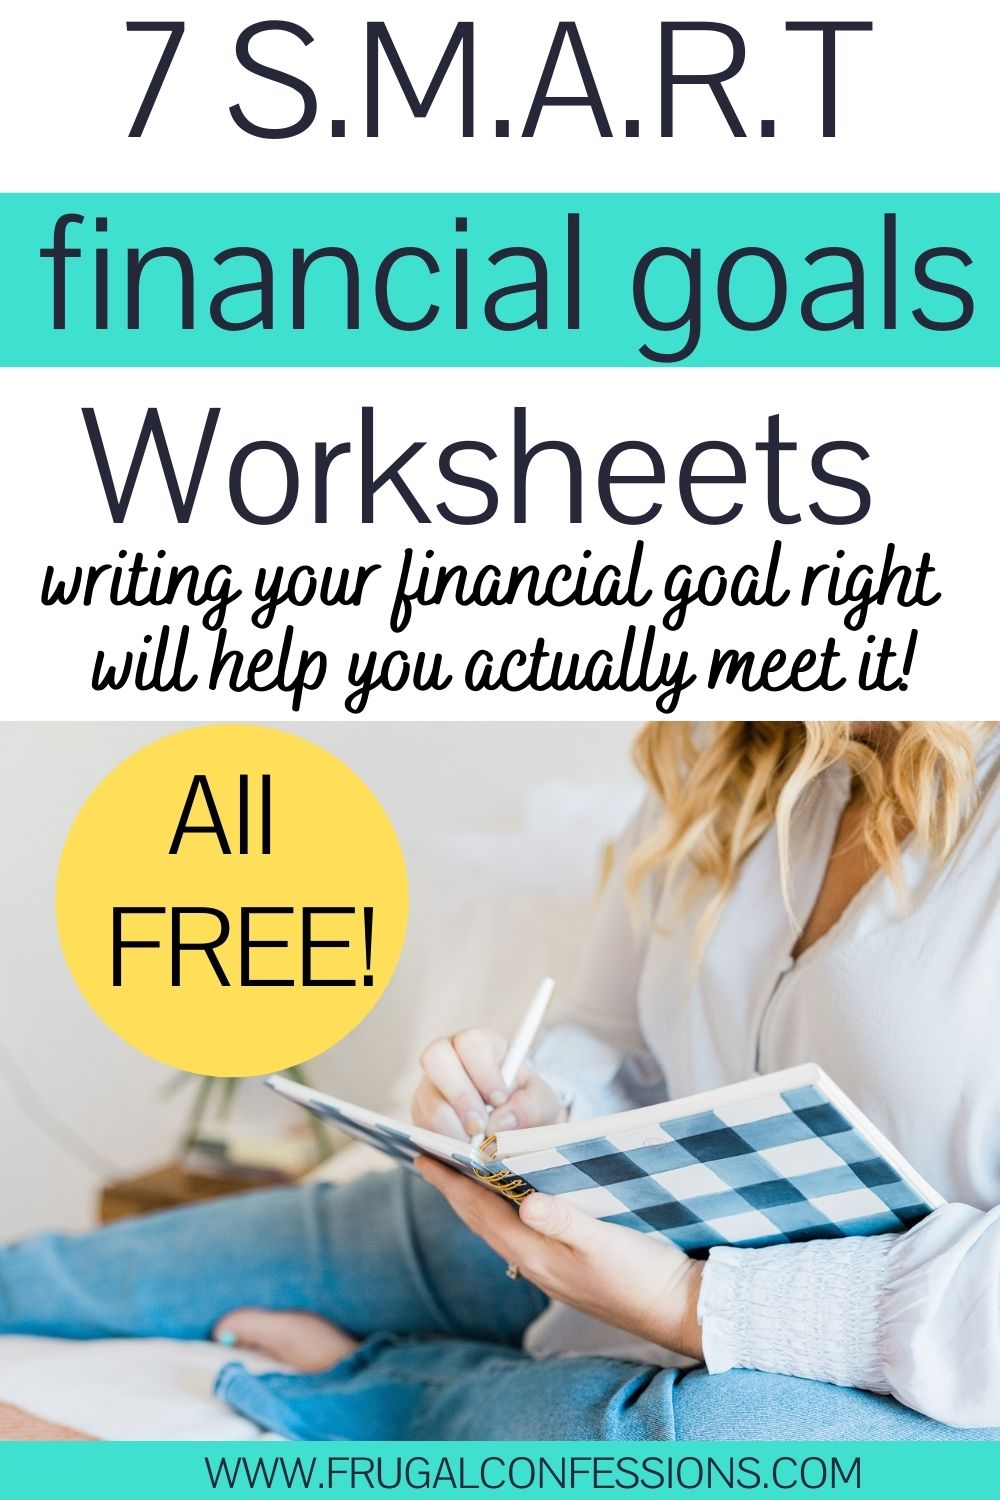 """woman writing financial goals in journal on bed, text overlay """" 7 SMART financial goals worksheets - all free"""""""